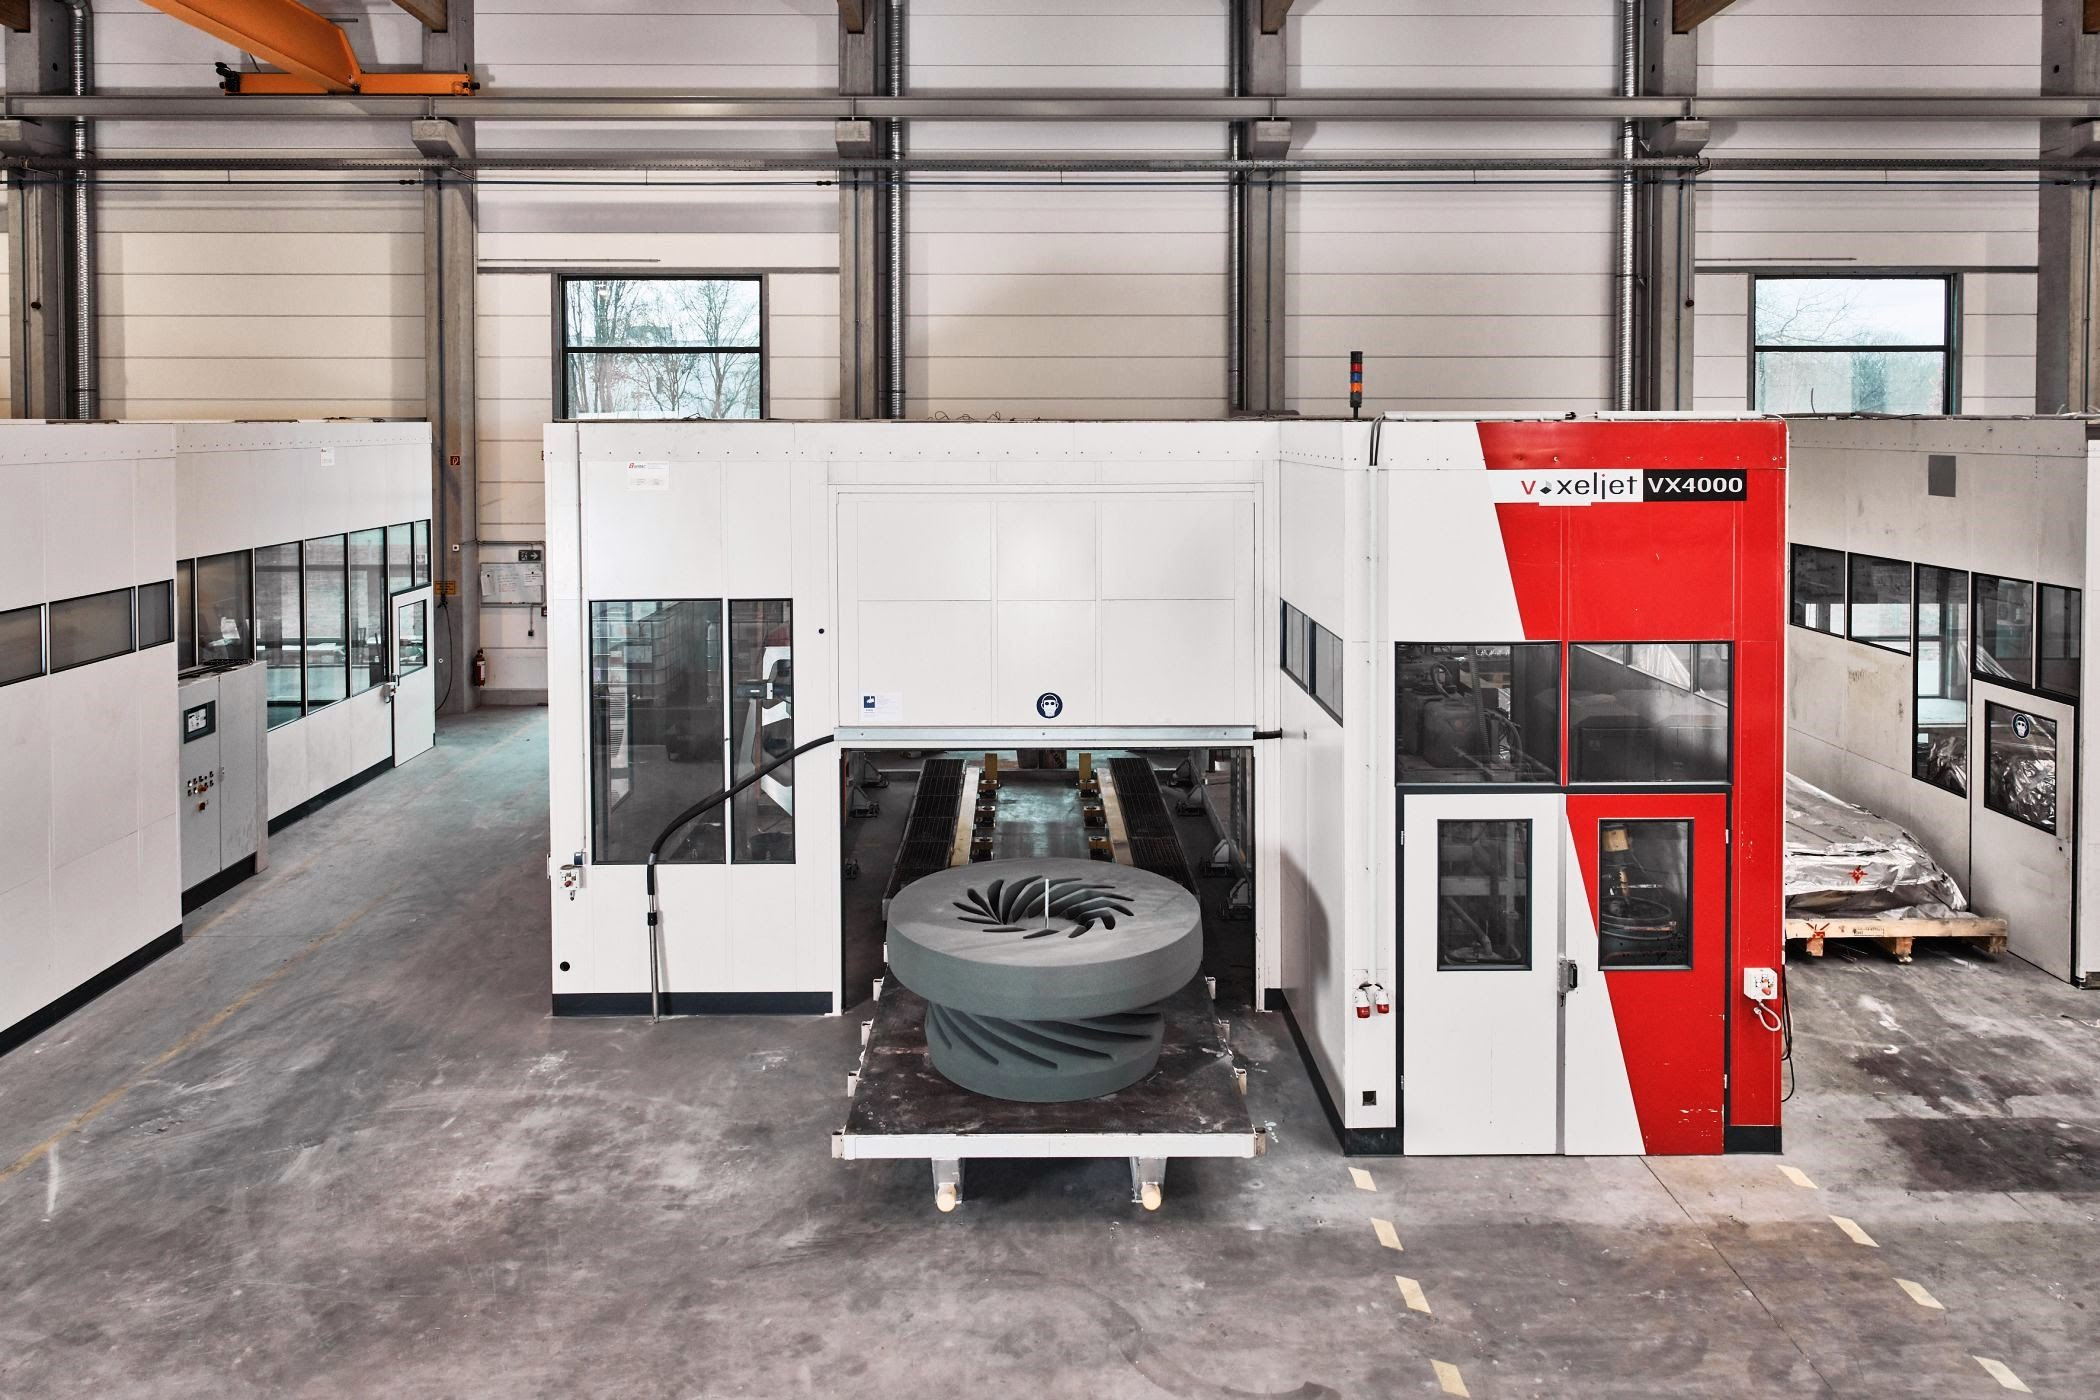 https://www.powertransmissionworld.com/the-future-of-3d-printing-in-transforming-the-concepts-of-manufacturing/